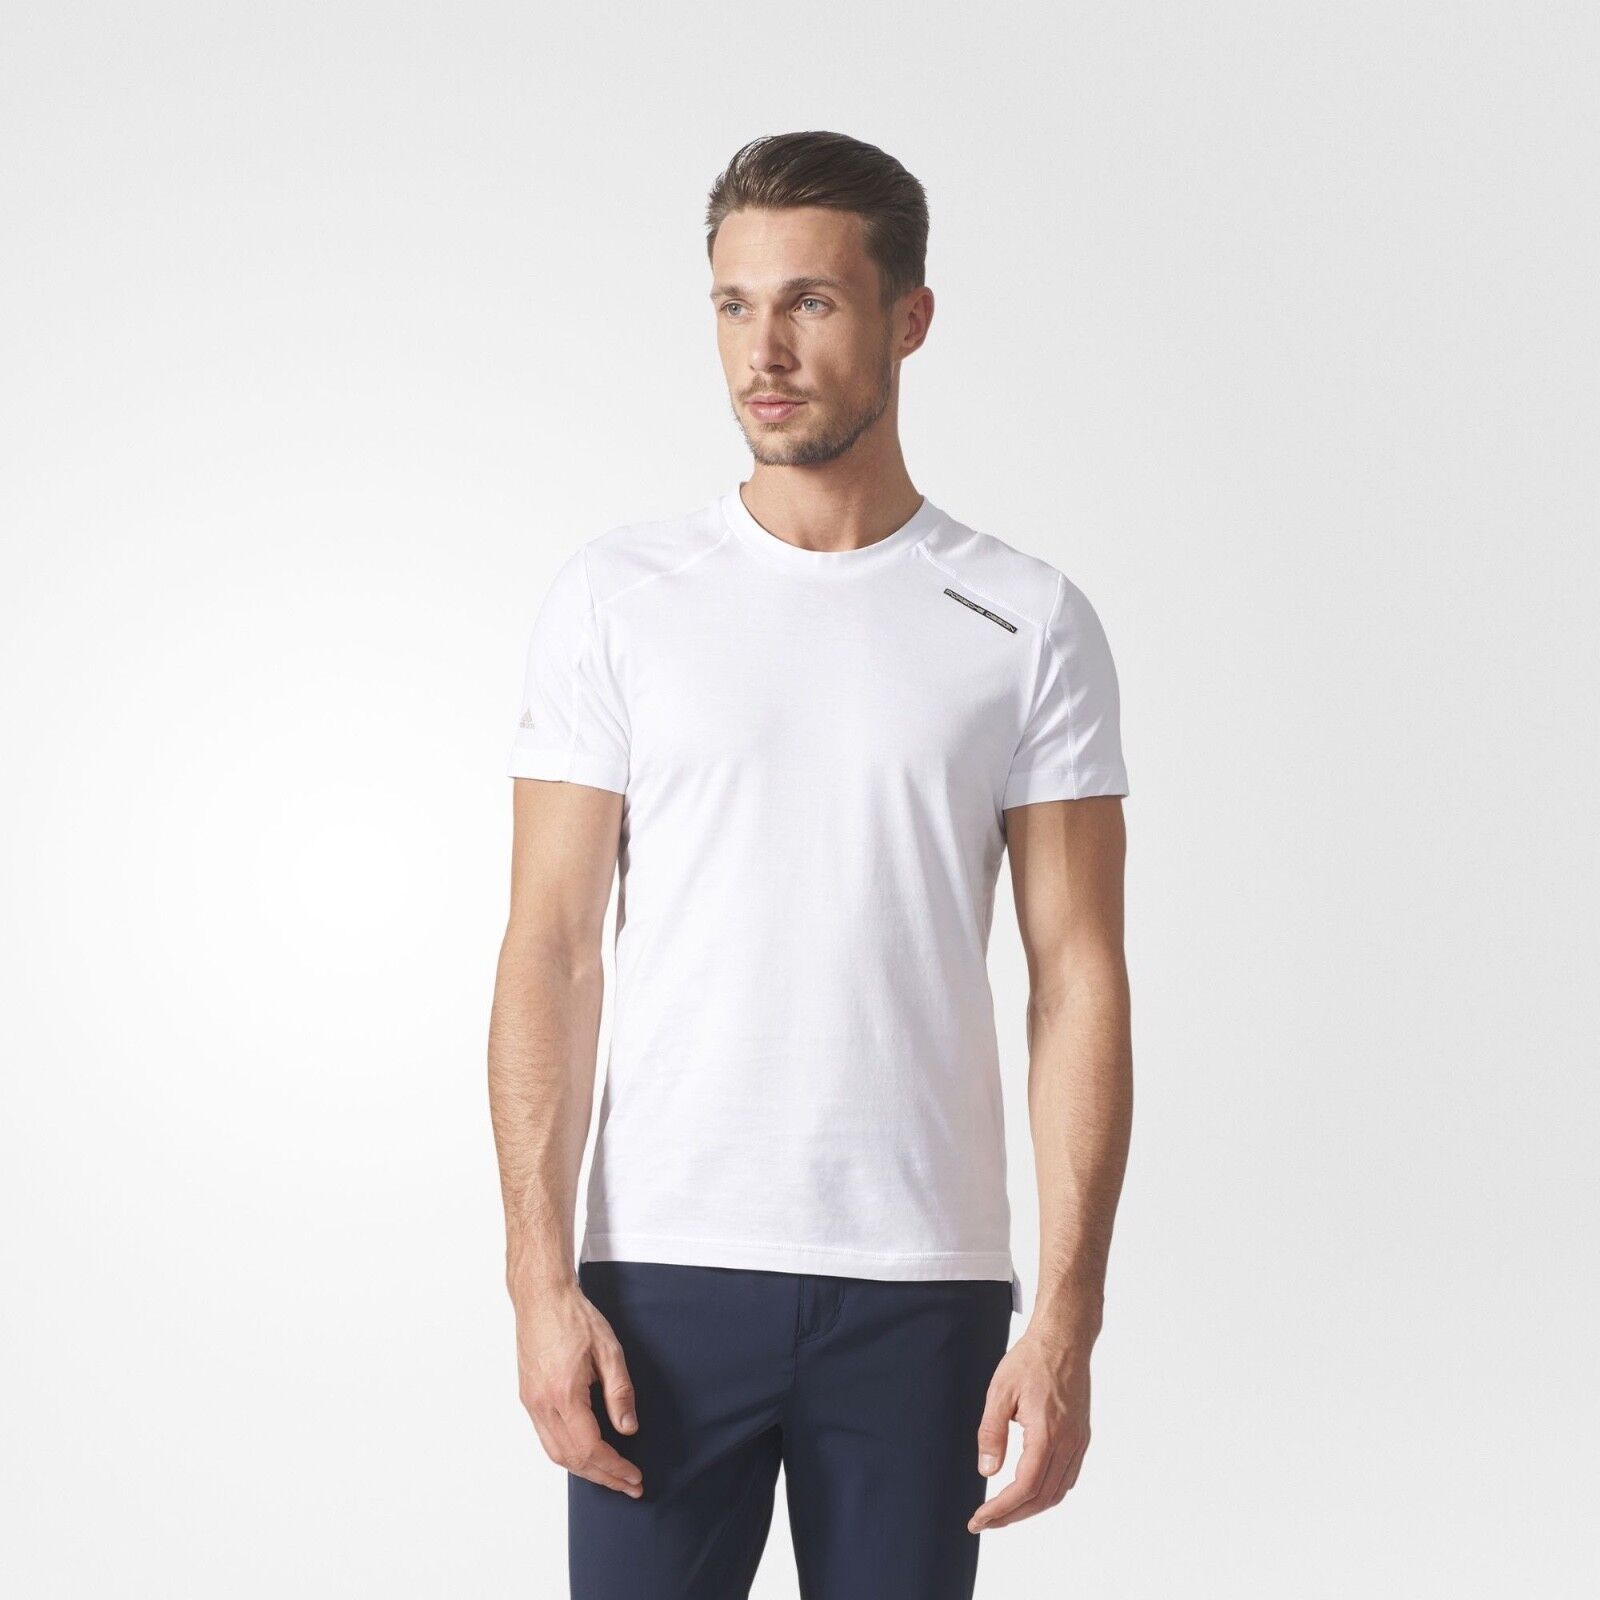 Adidas Porsche Design - CORE TEE WHITE - 2XL